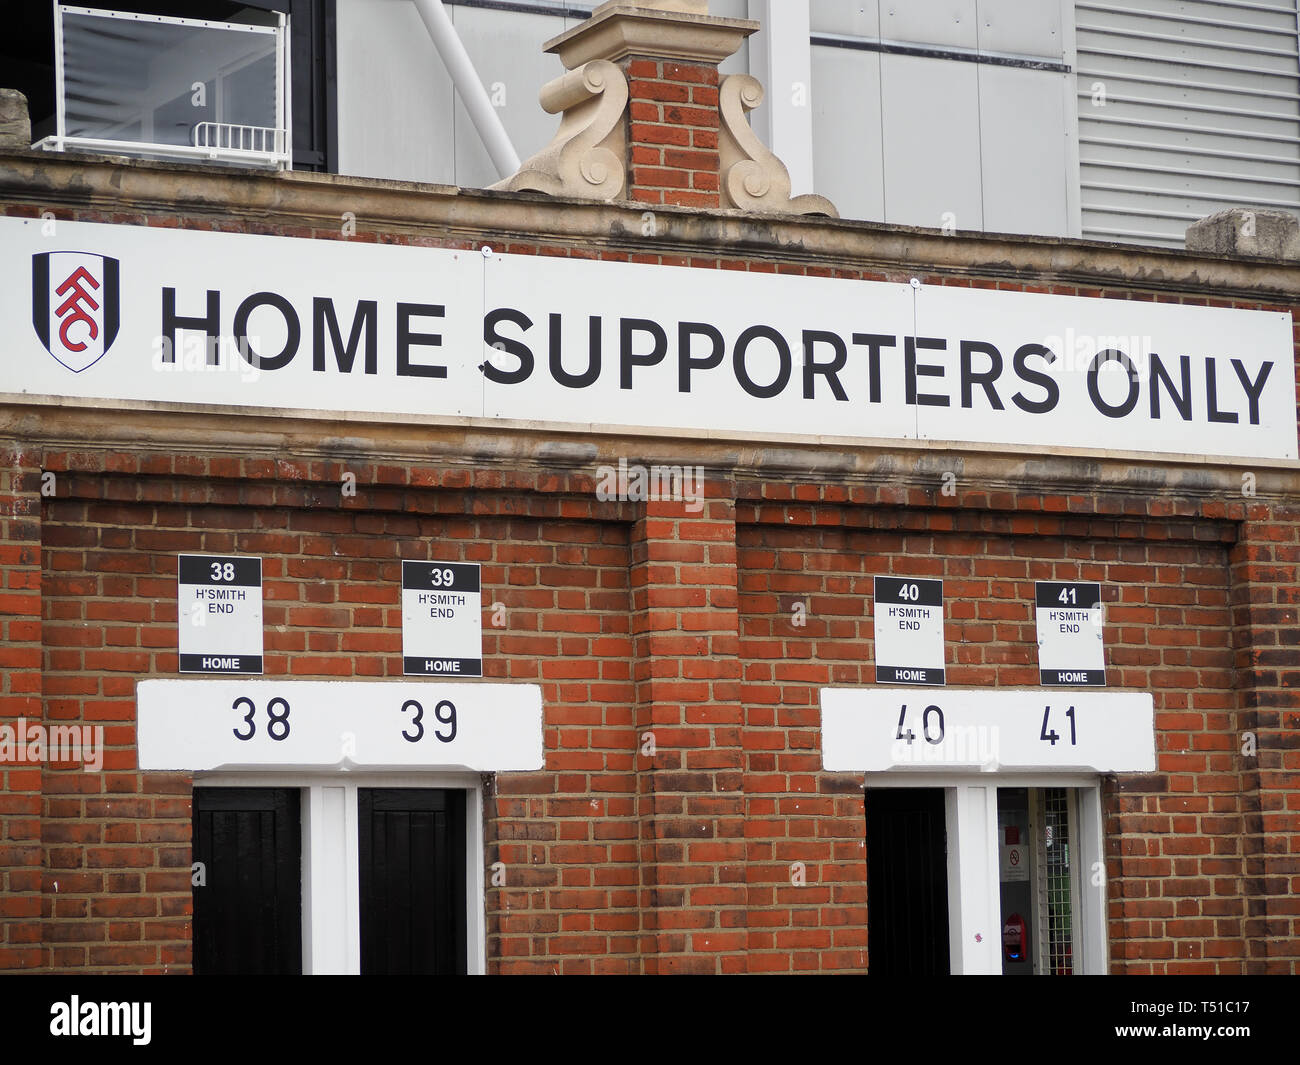 View of the home supporters entrance at Craven Cottage football club in London - Stock Image